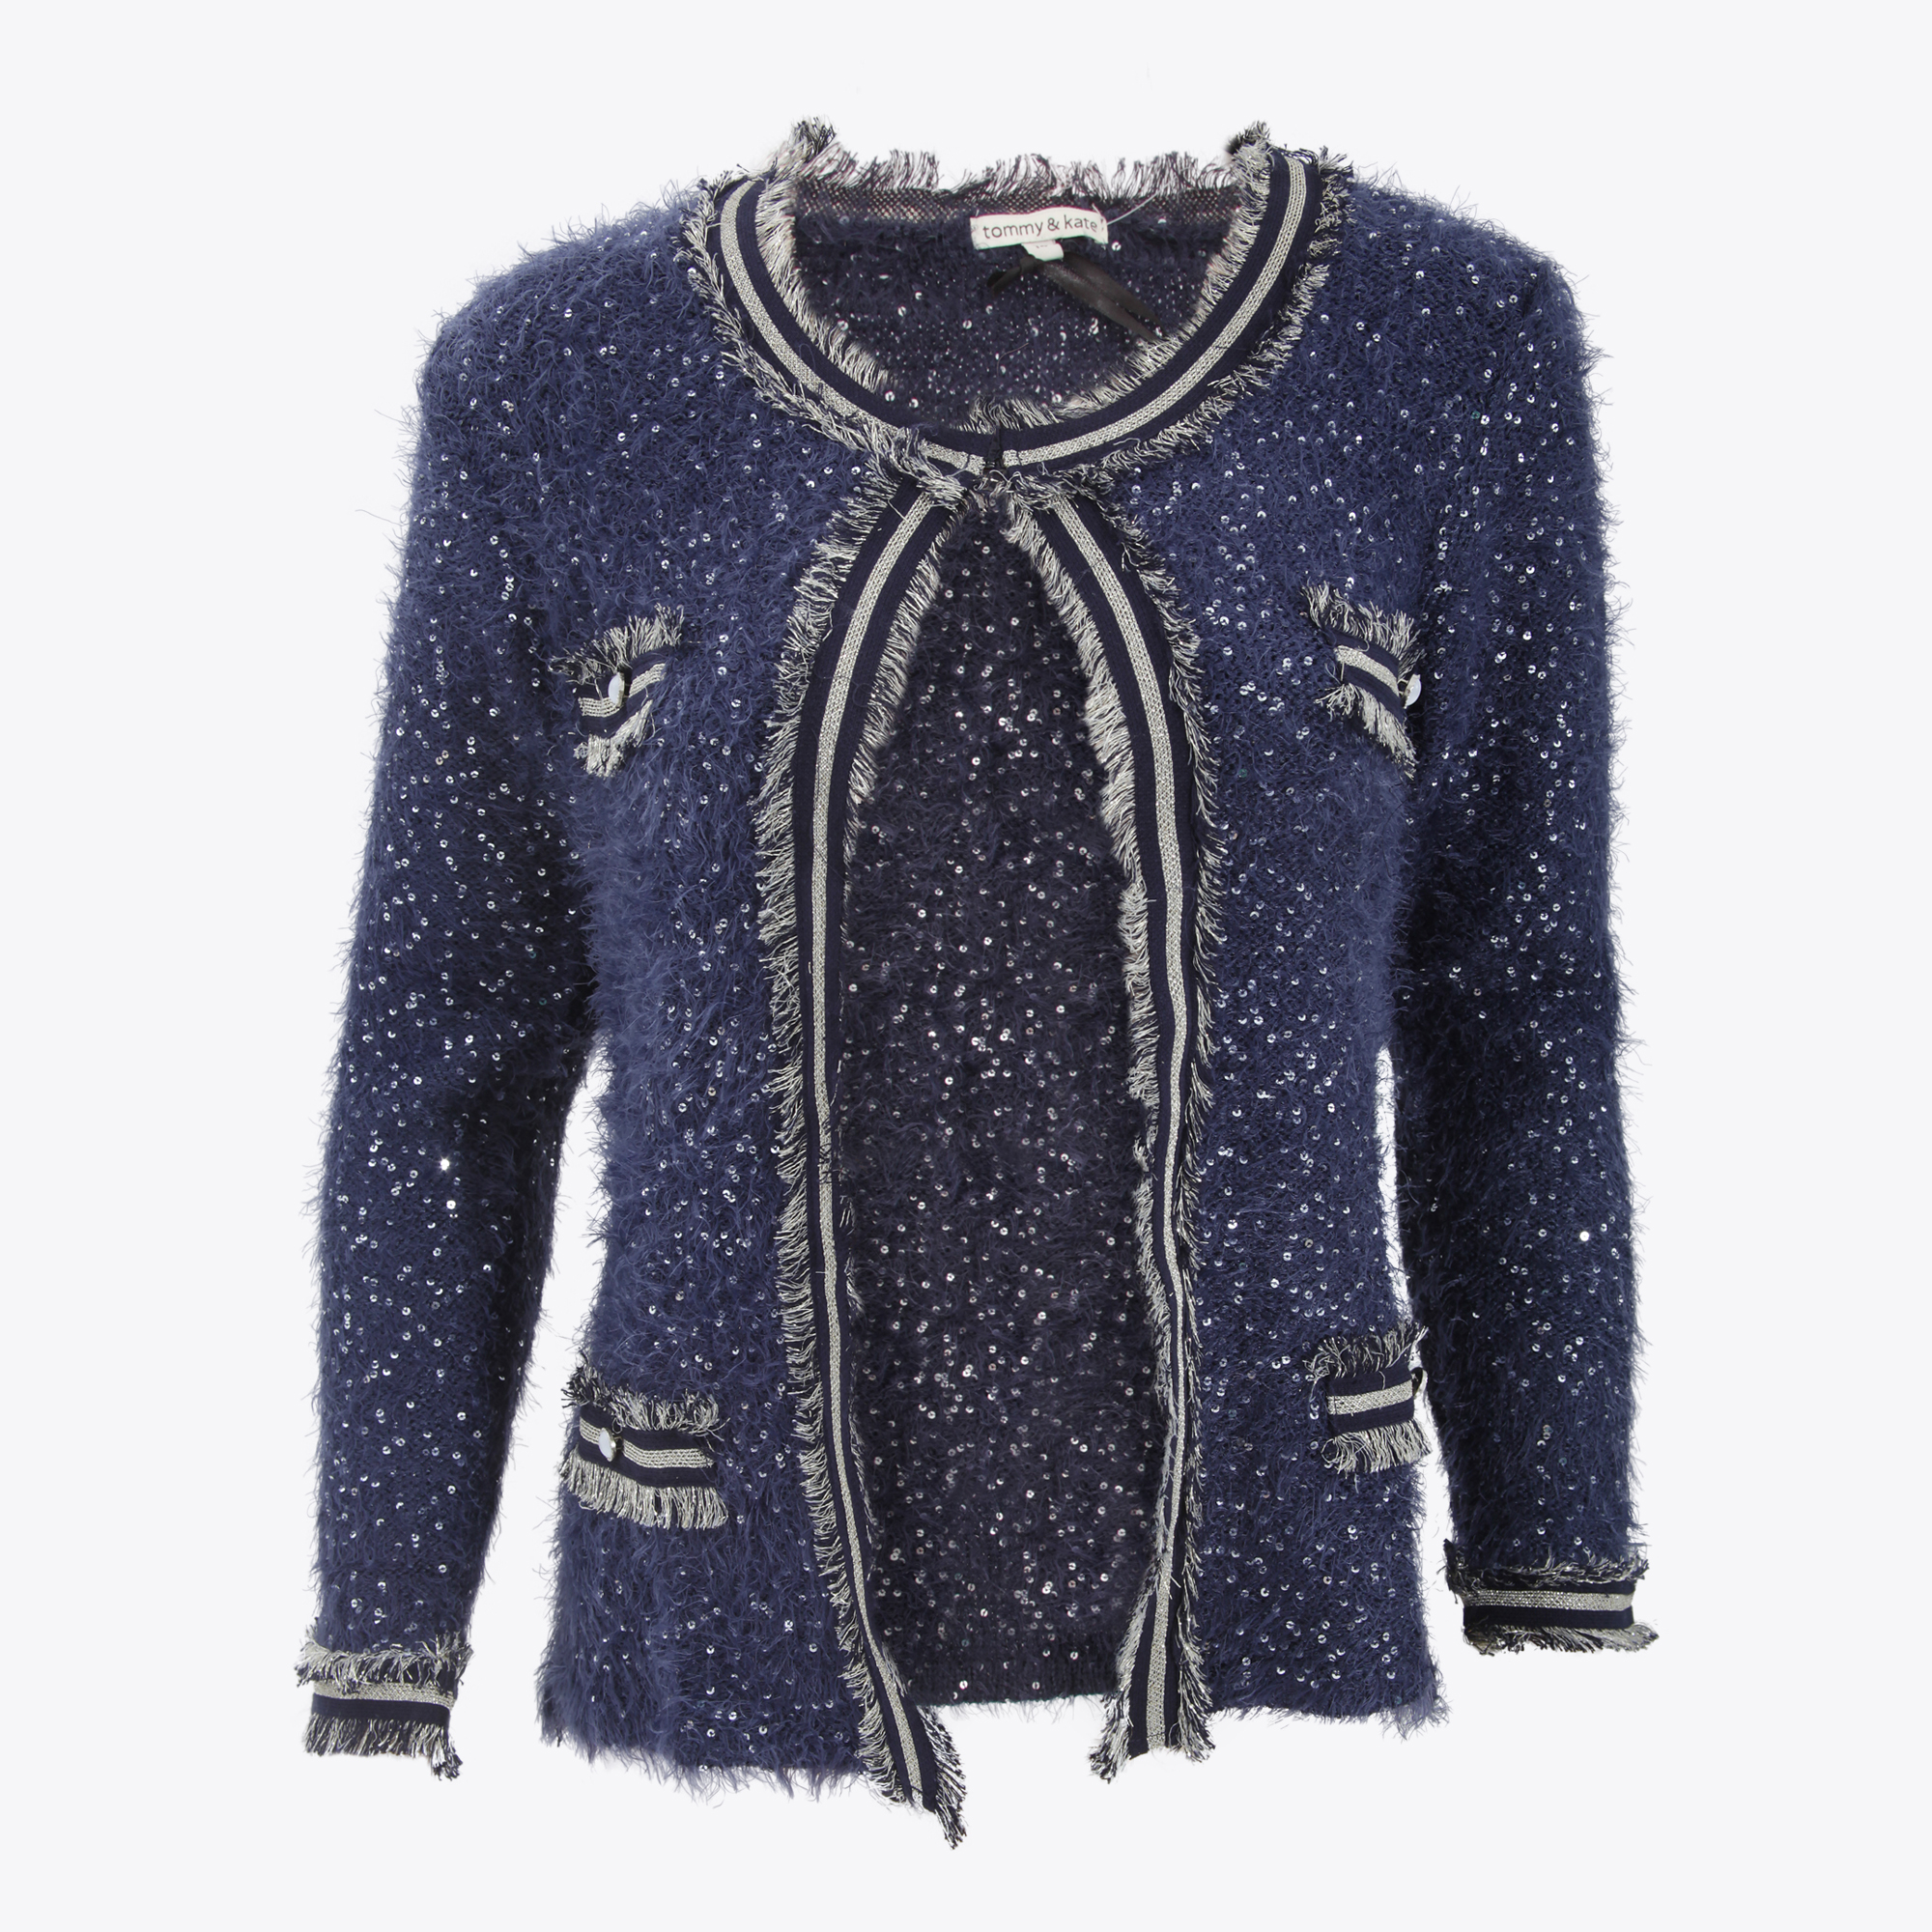 Long Gold Sequin Cardigan - Full Zip Sweater